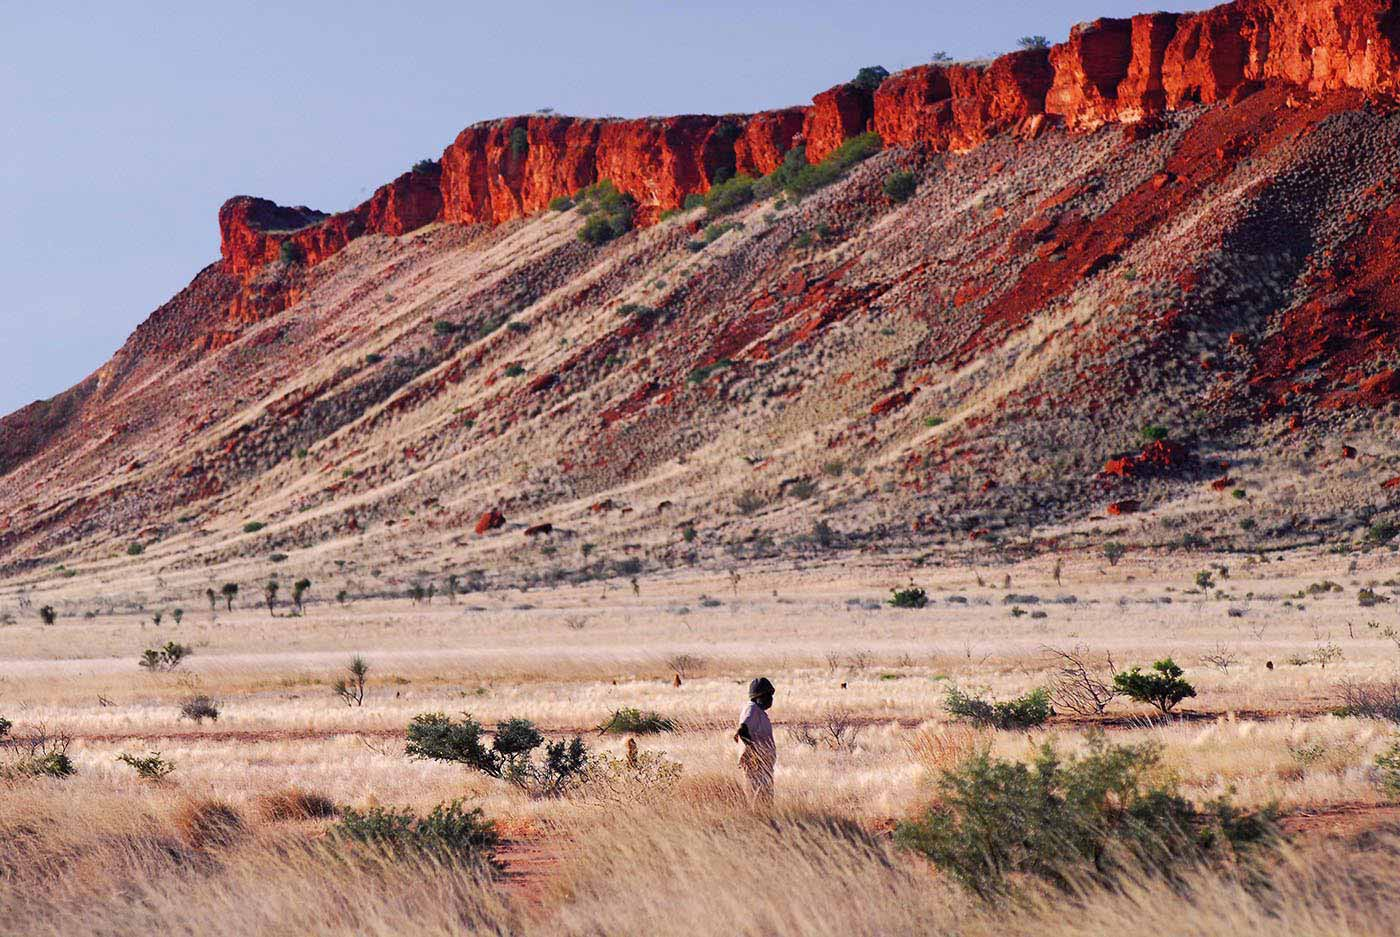 Colour photo of a landscape featuring a sloping mountain tapering to a red rock at the top.